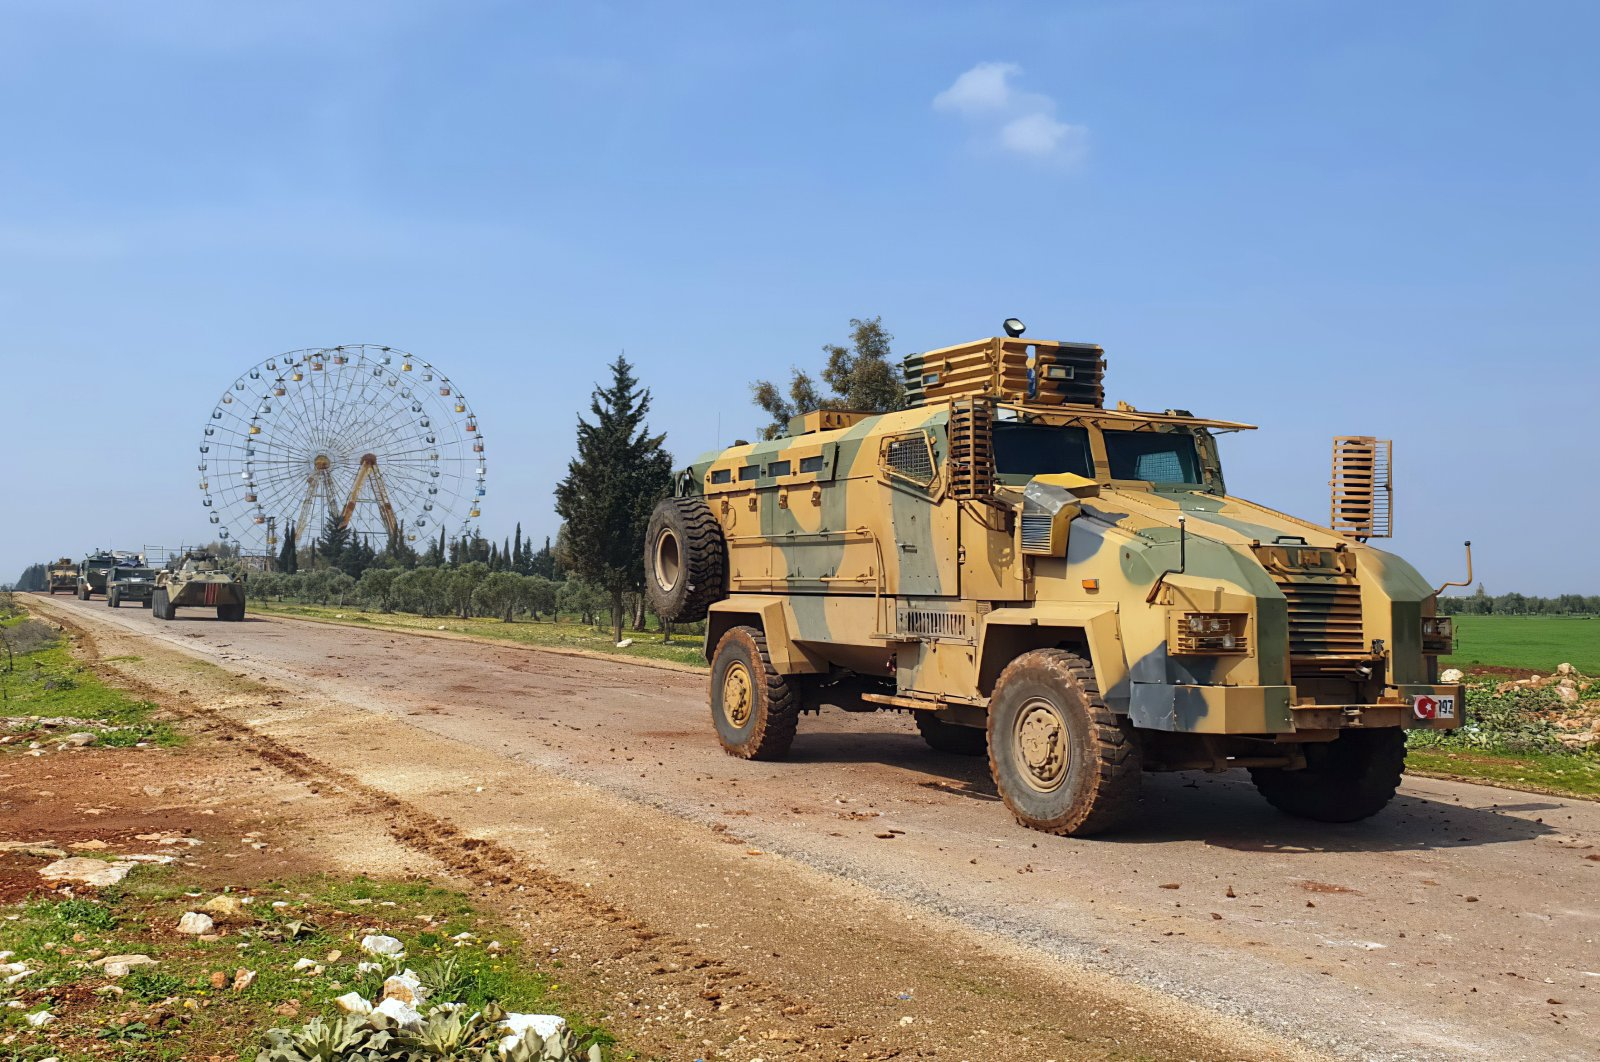 Turkish and Russian troops patrol on the M4 highway, which runs east-west through Idlib province, northwest Syria, March 15, 2020. (Turkish Defense Ministry via AP)